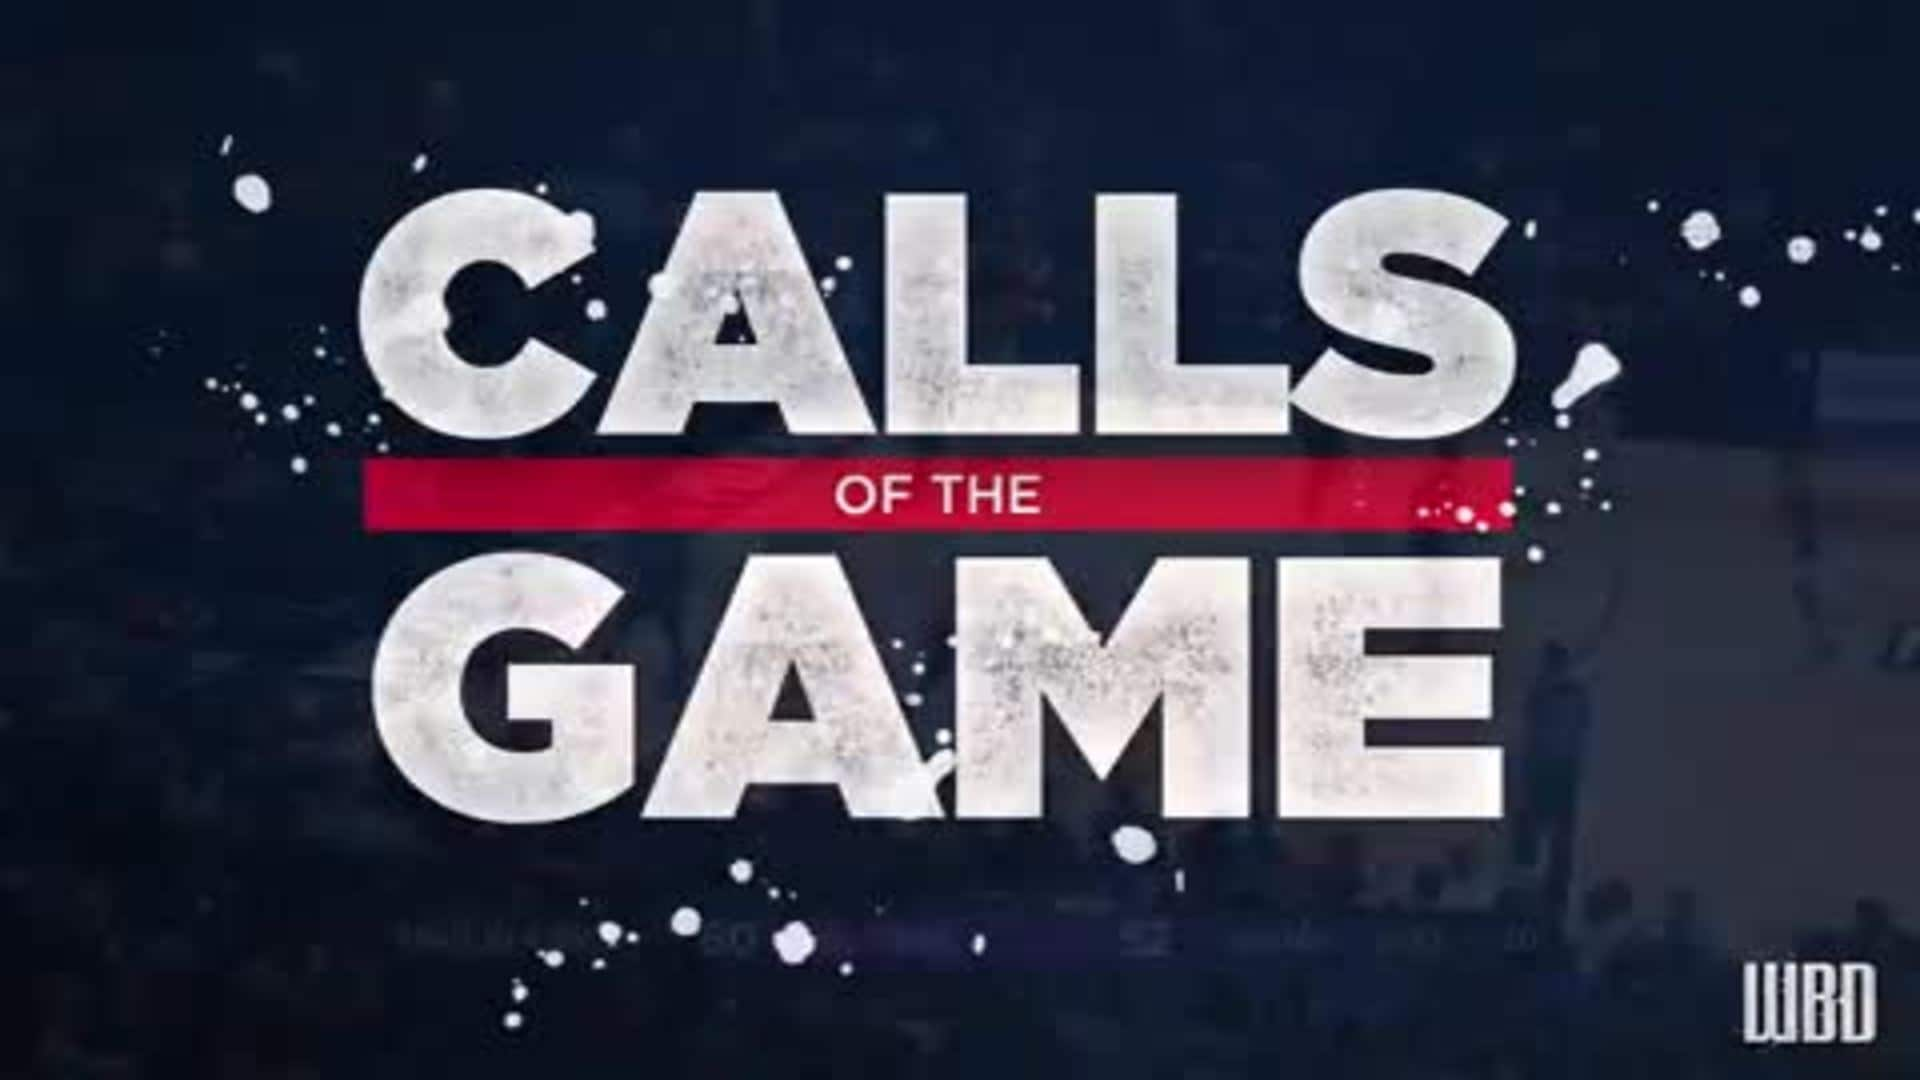 Calls of the Game: New Orleans Pelicans vs Portland Trail Blazers - Game 54 - Feb. 11, 2020